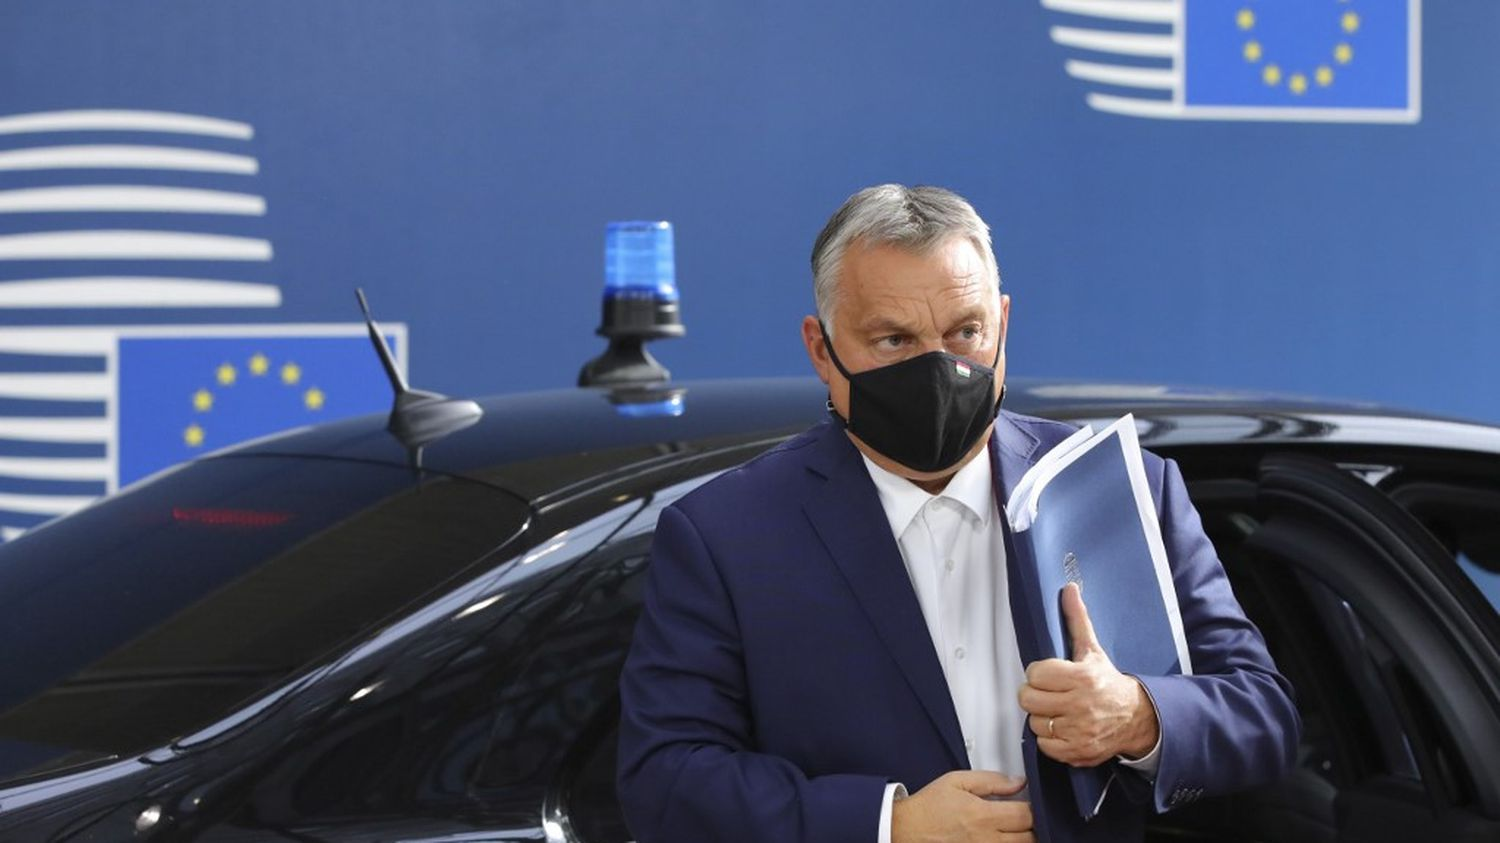 Hungary and Poland threaten veto against European Union budget, Covid-19 funds